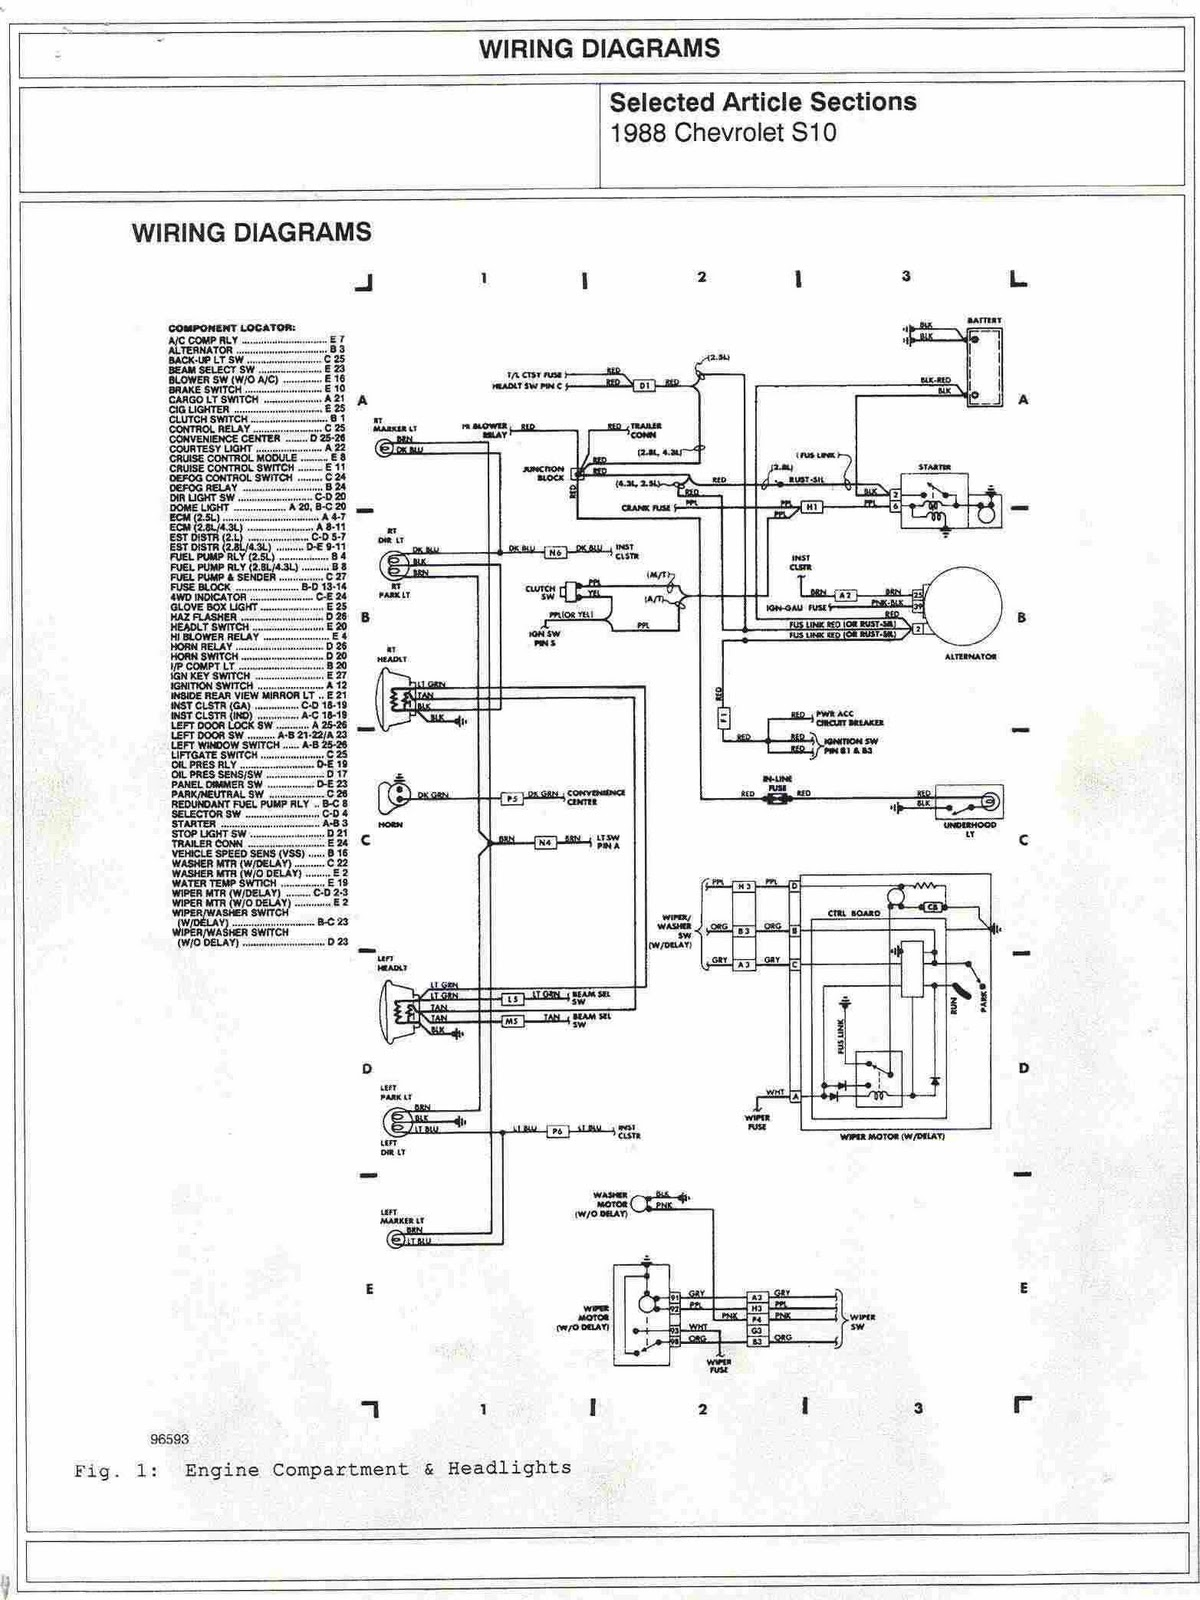 Wiring Diagram For 95 Chevy Lumina Library 1995 Fuse Box Simonand 1988 Chevrolet S10 Engine Compartment And